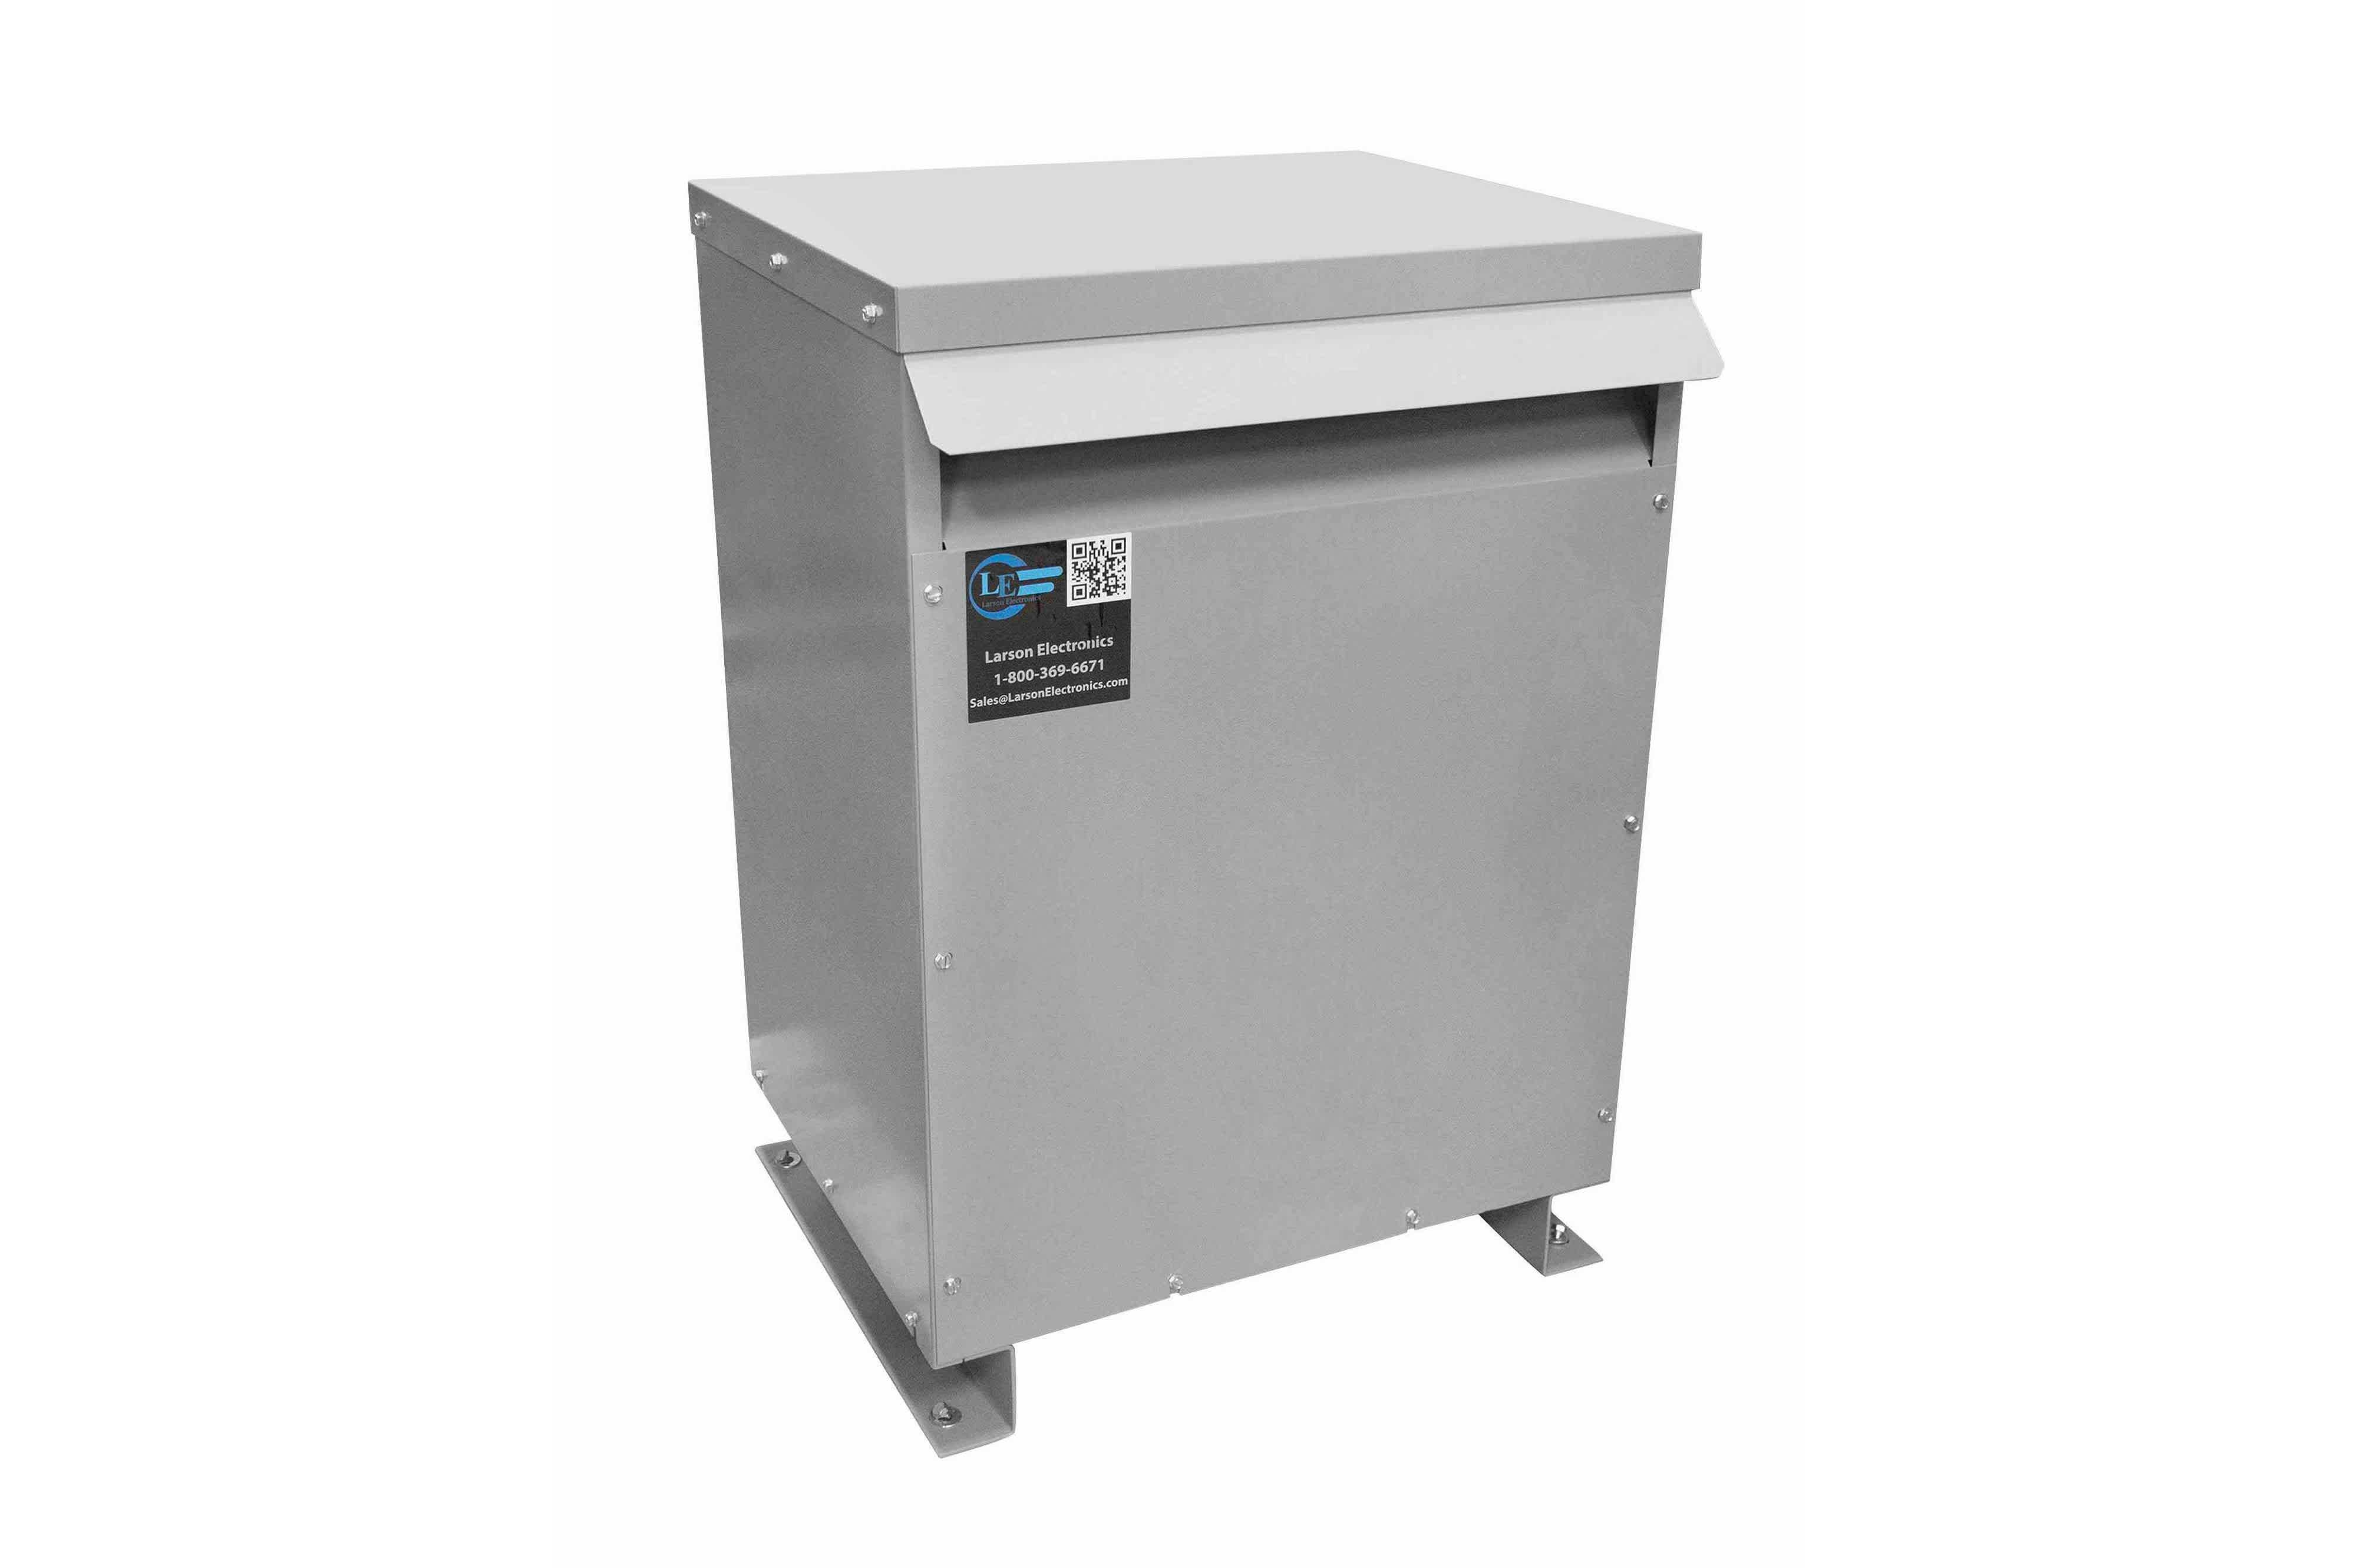 36 kVA 3PH Isolation Transformer, 480V Wye Primary, 480Y/277 Wye-N Secondary, N3R, Ventilated, 60 Hz